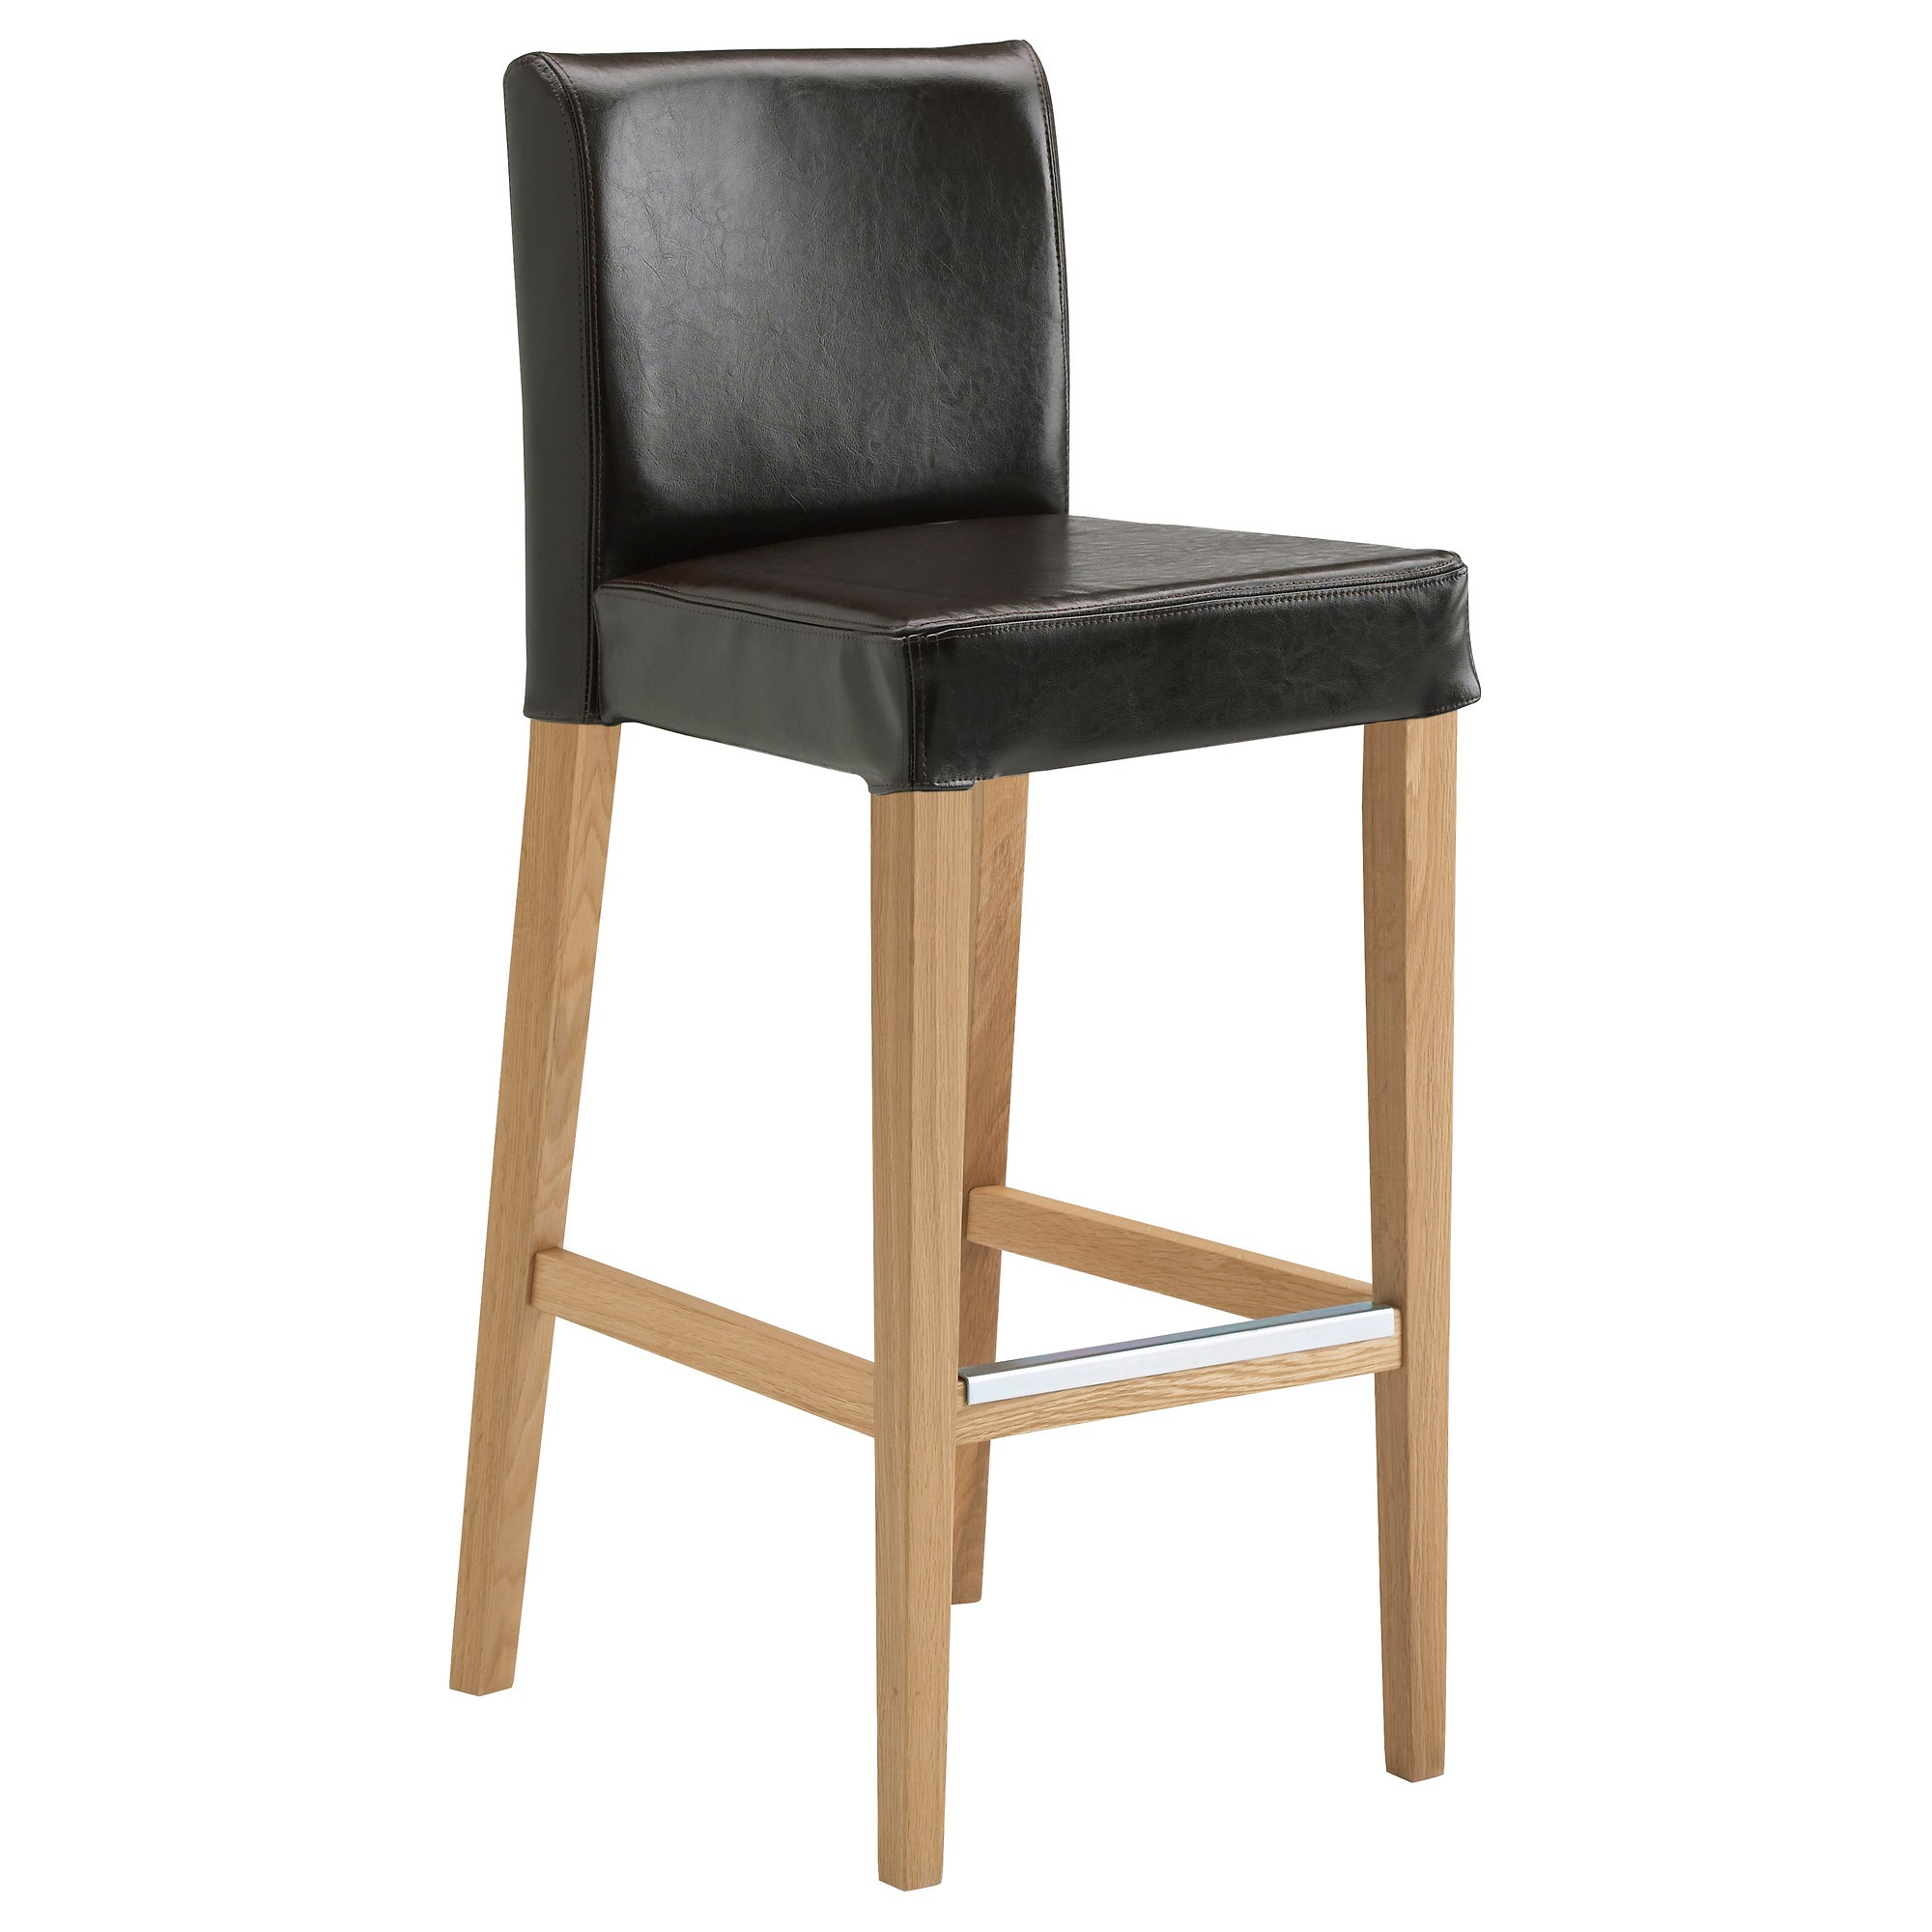 tabouret de cuisine ikea maison et mobilier d 39 int rieur. Black Bedroom Furniture Sets. Home Design Ideas